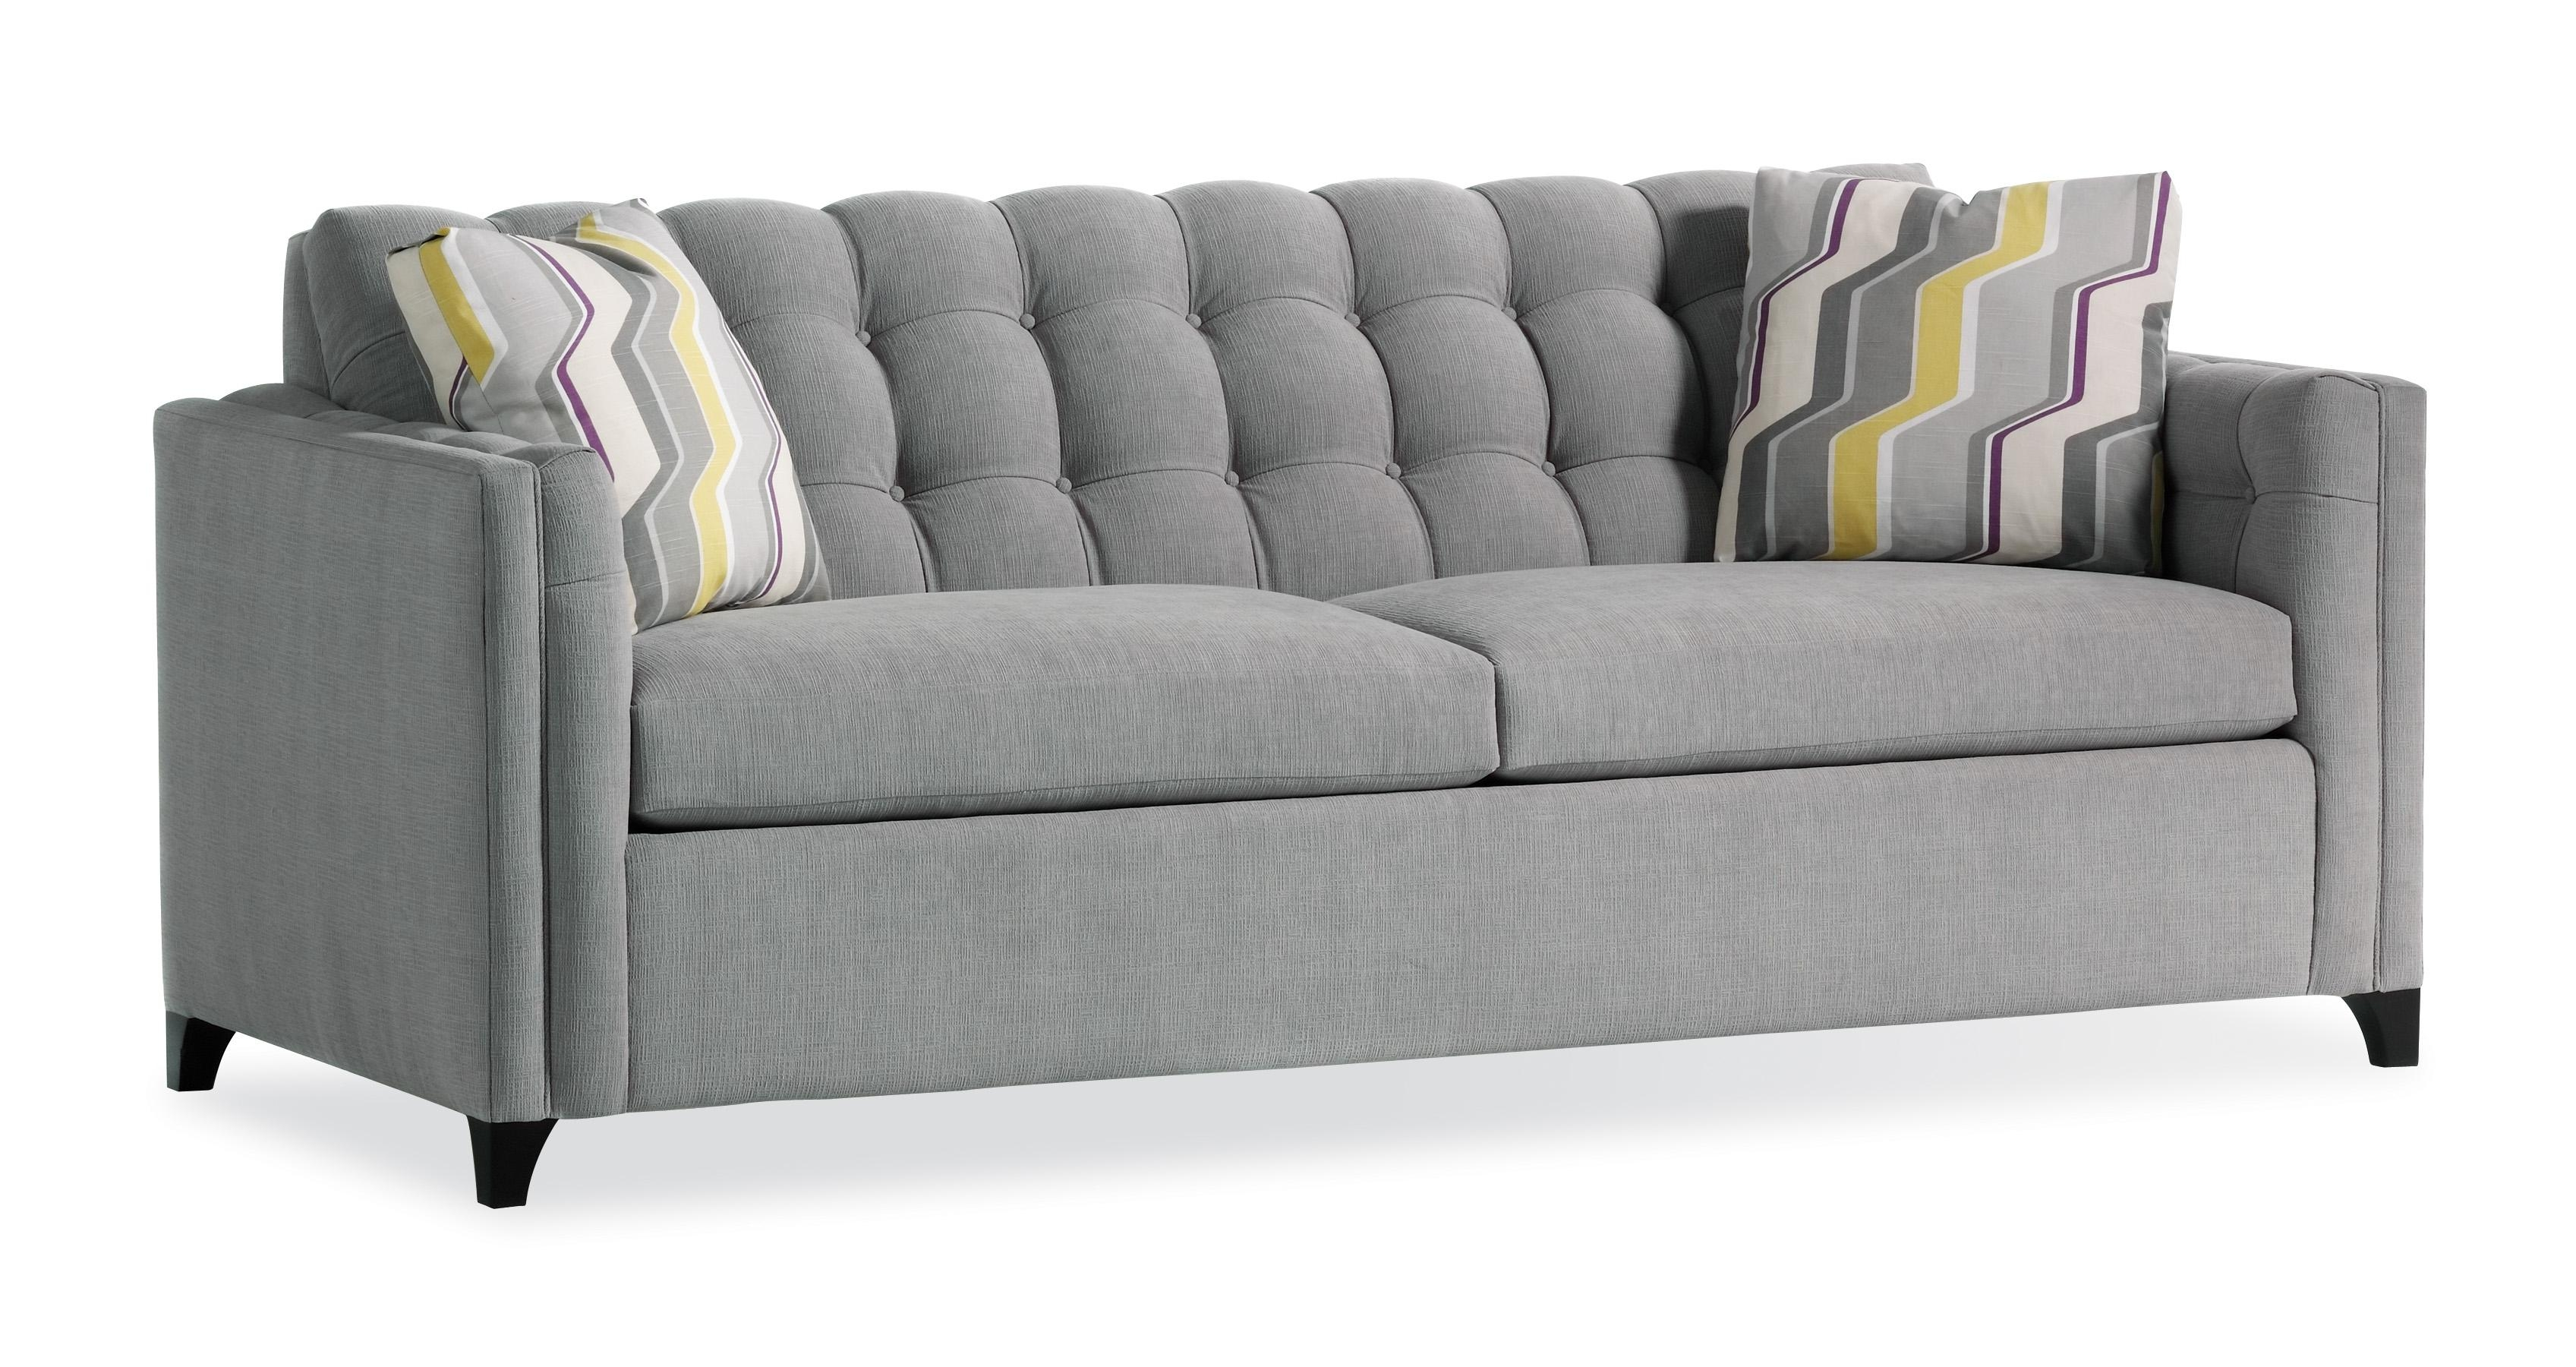 Sleeper Sofa Denver With Design Hd Images 31615 | Kengire Throughout Denver Sleeper Sofas (View 8 of 20)